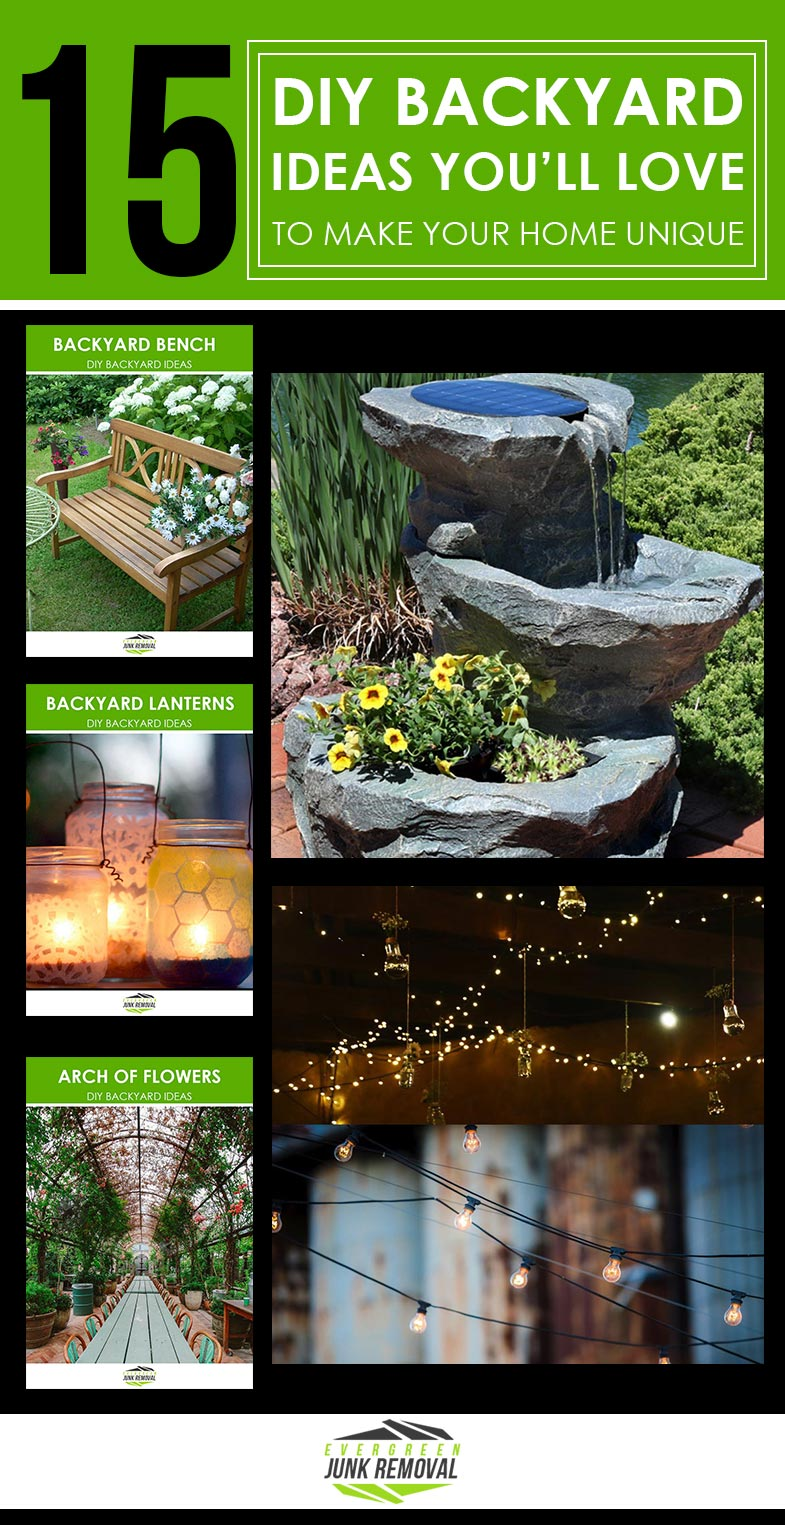 Evergreen Junk Removal Service - DIY Backyard Ideas To Make Your Home Even More Beautiful.